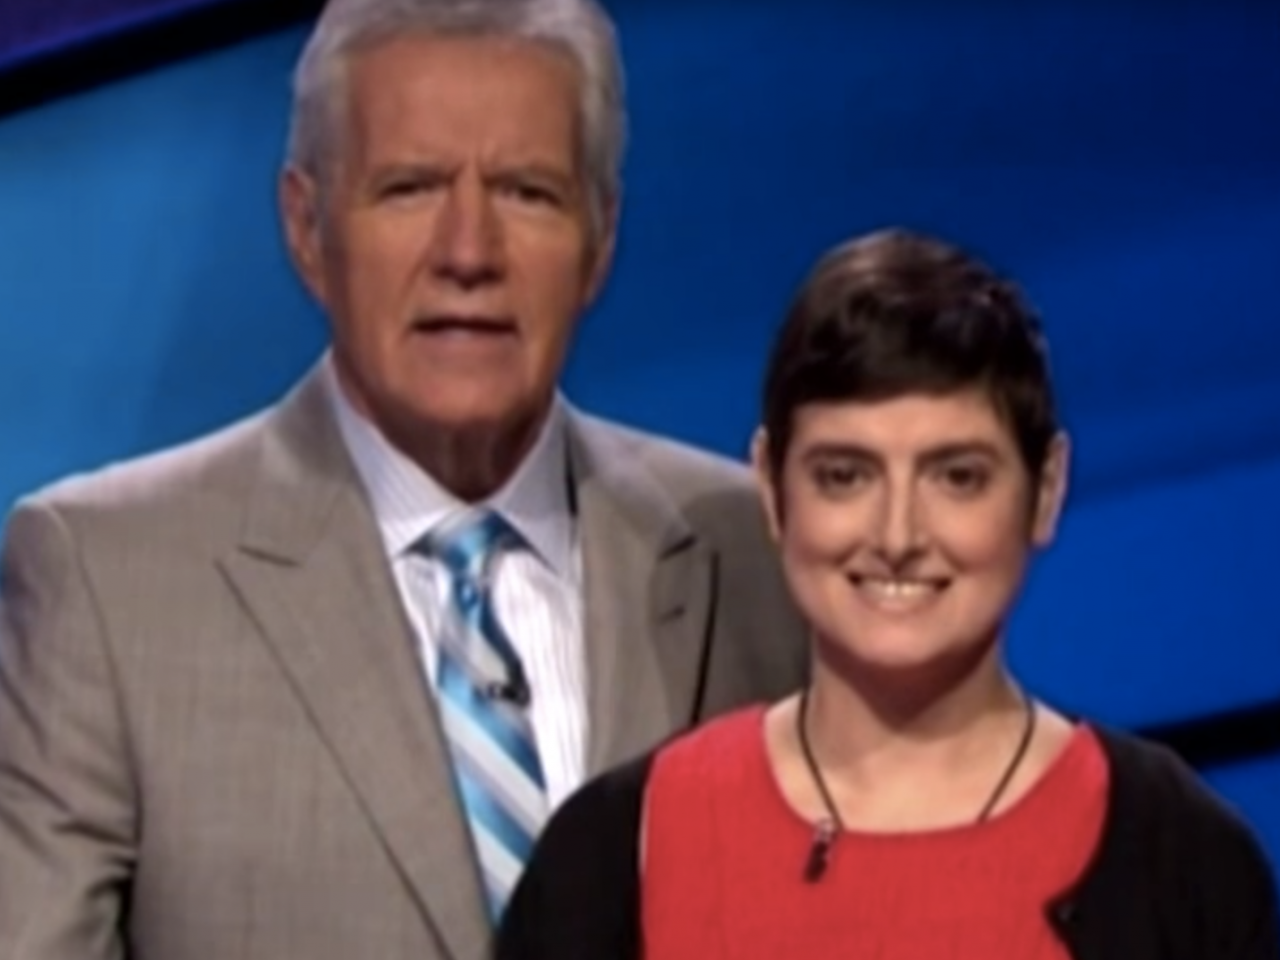 Alex Trebek, Ken Jennings and more remember 'Jeopardy!' champion who passed away